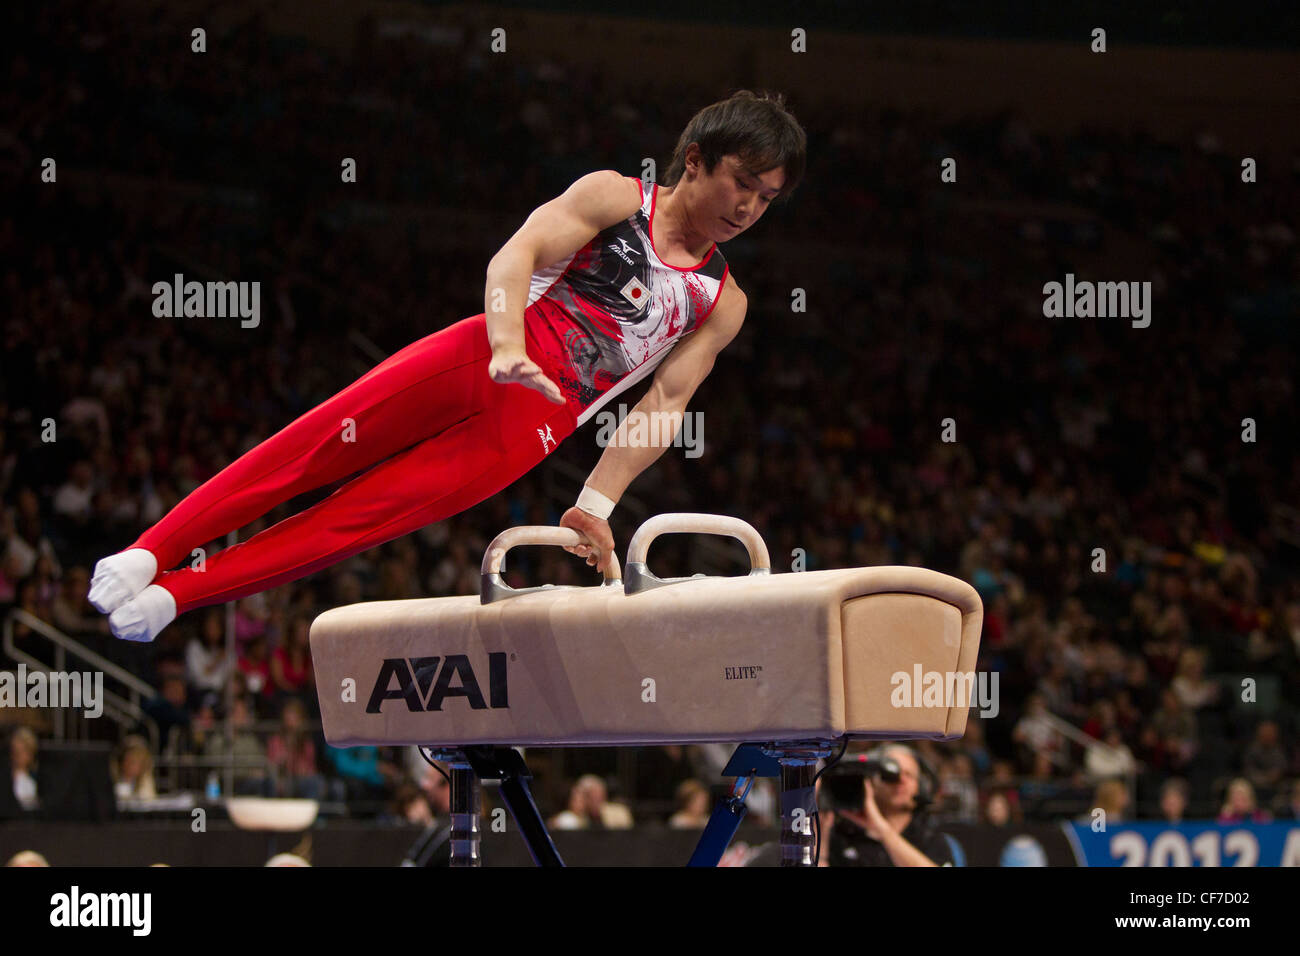 Ryuzo Sejima (JPN) competes in the pommel horse event at the 2012 American Cup Gymnastics - Stock Image